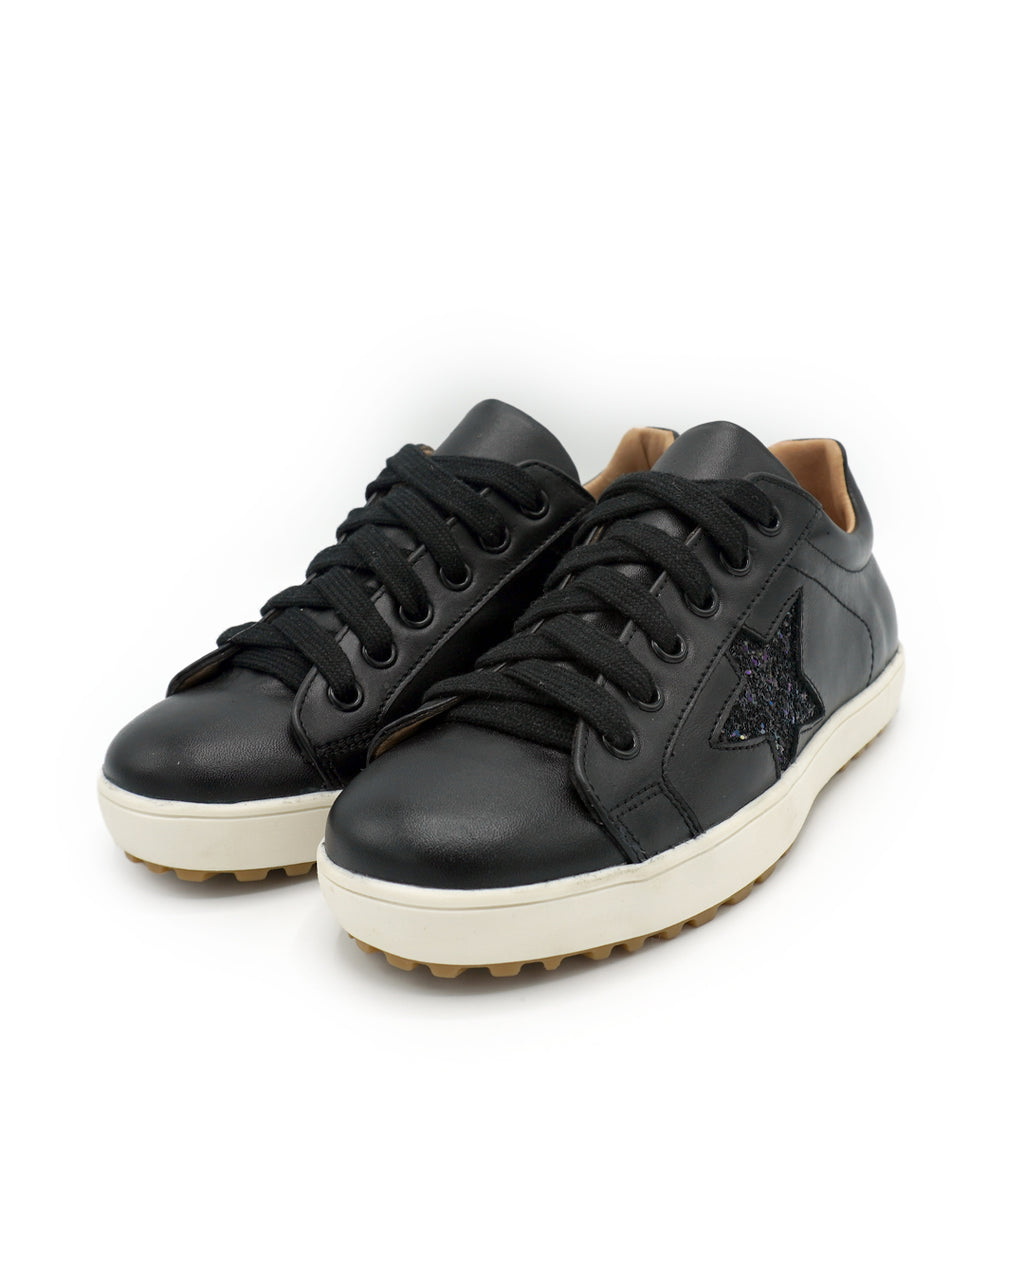 Black Leather Sneaker with Glitter Star